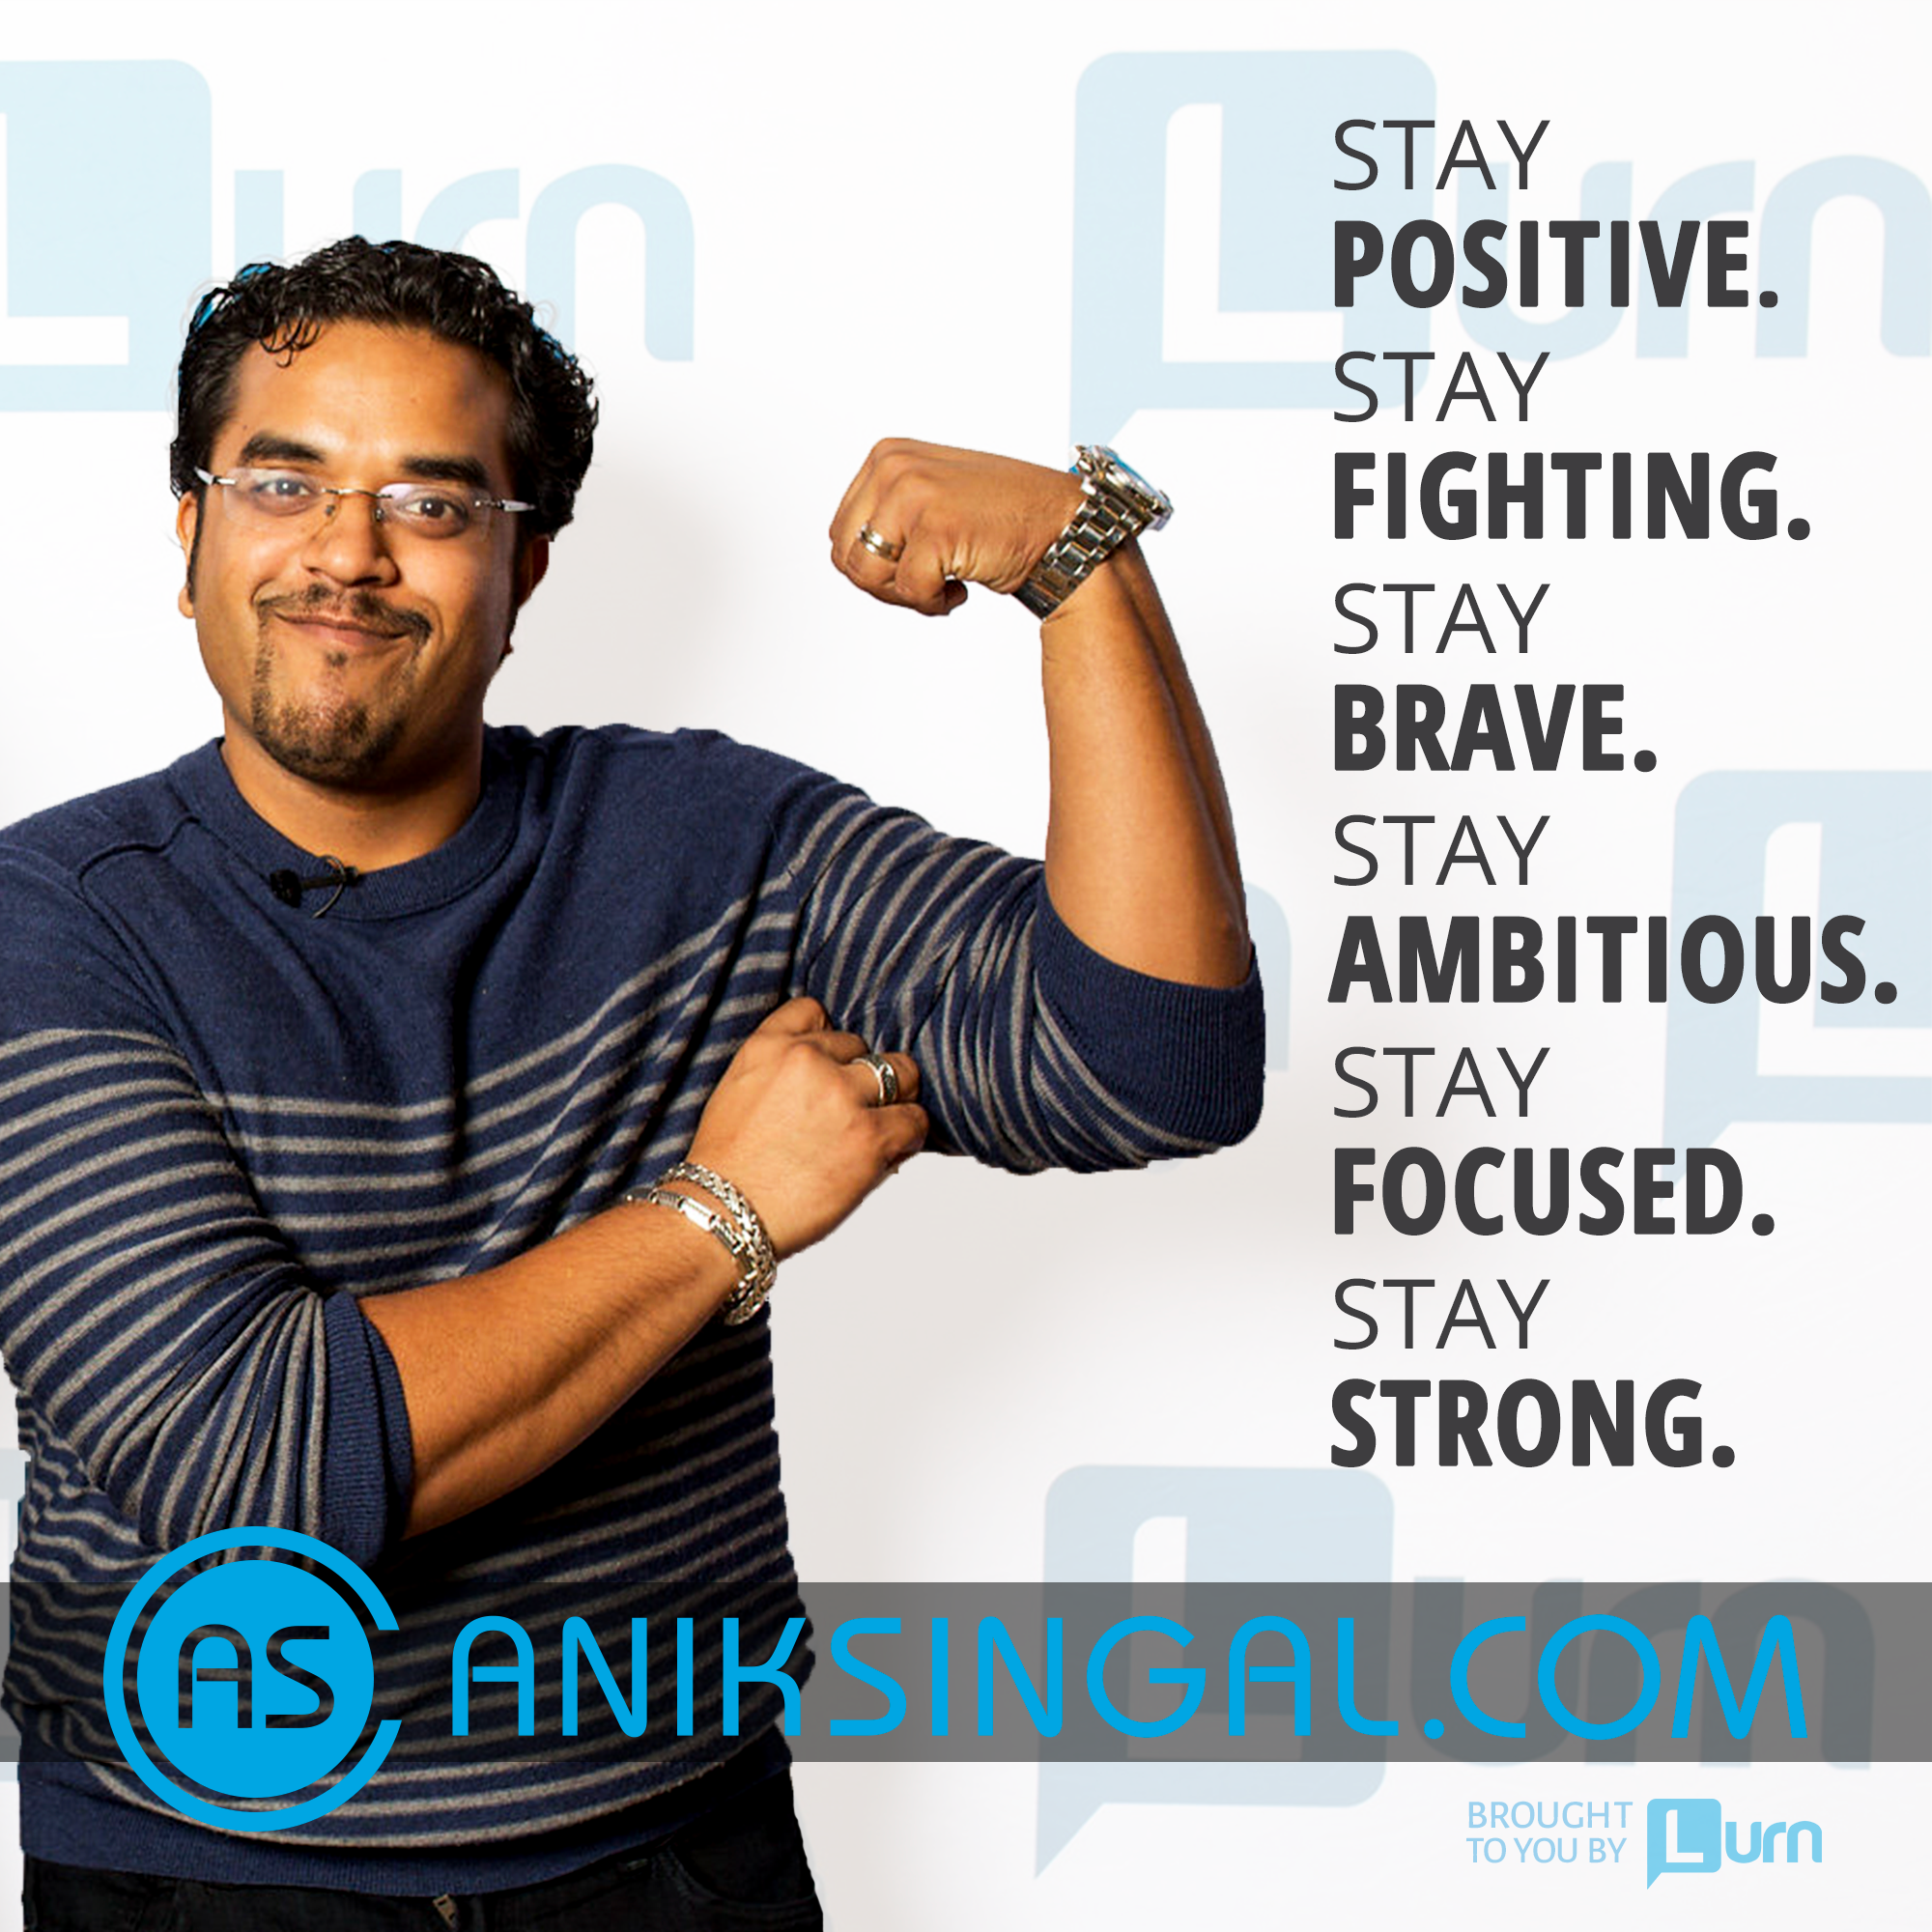 Stay Positive. Fighting. Brave. Ambitious. Focused. Strong.